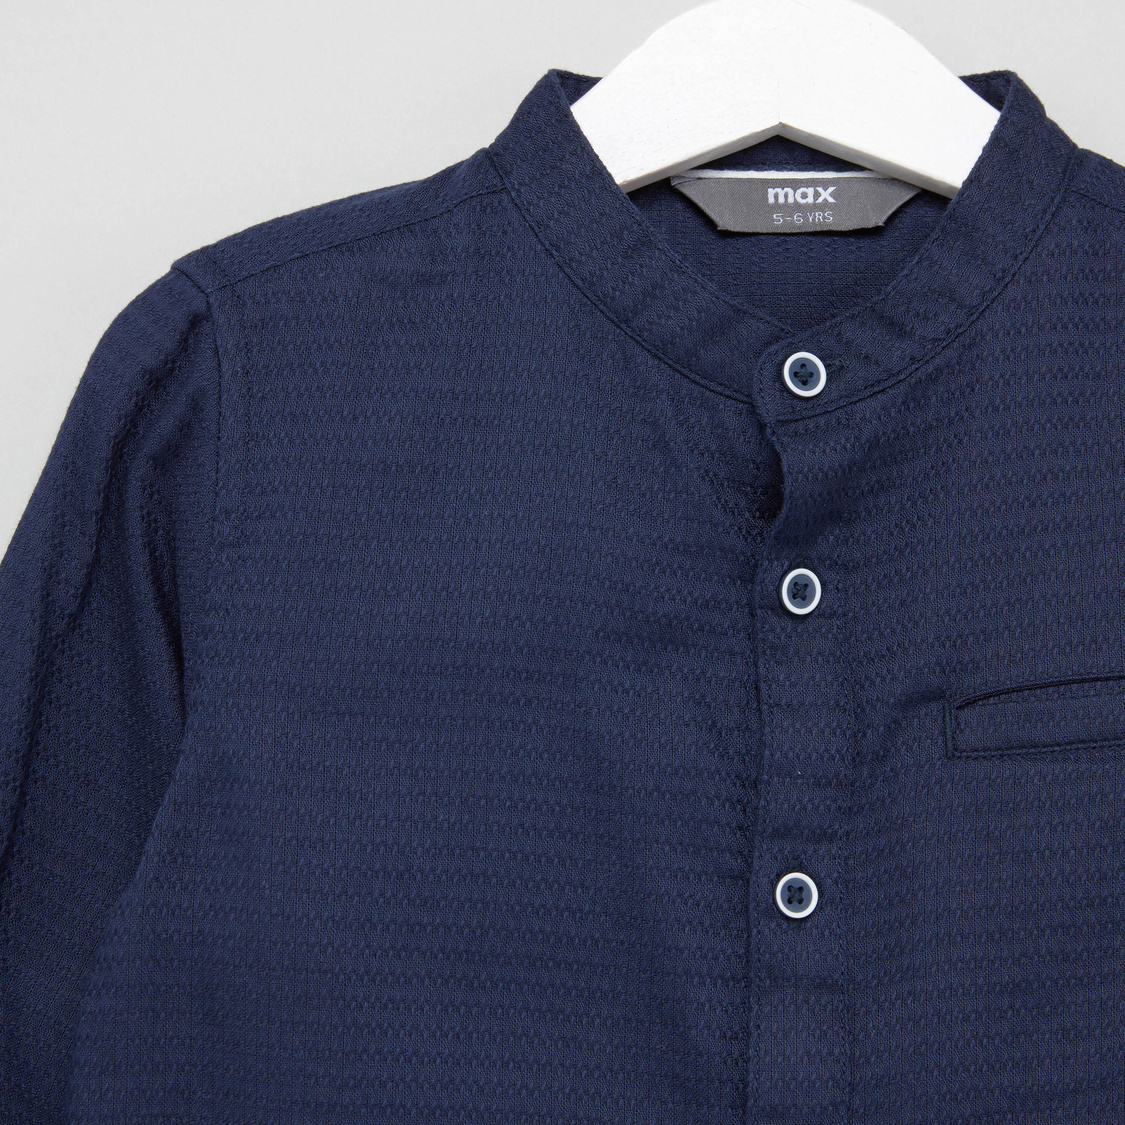 Textured Shirt with Mandarin Collar and Roll-Up Tab Sleeves